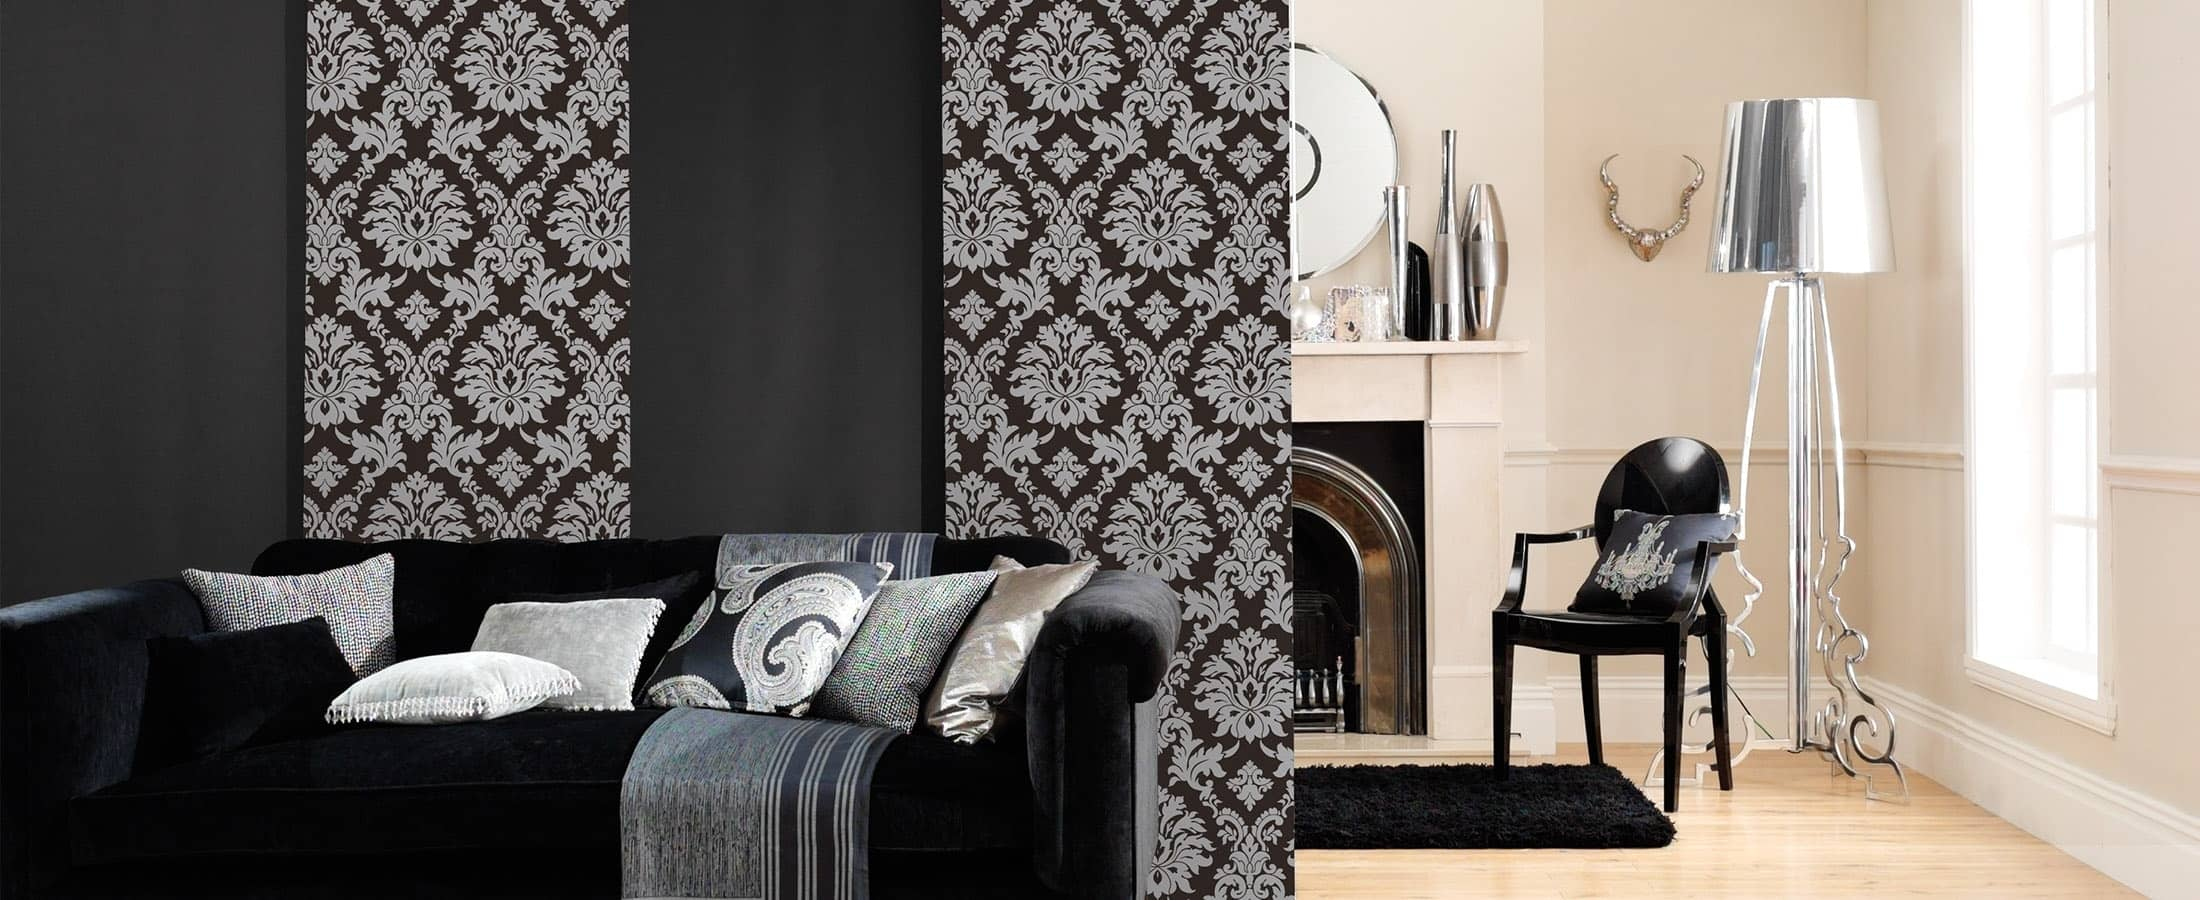 Elegant looking Black Panel Blinds